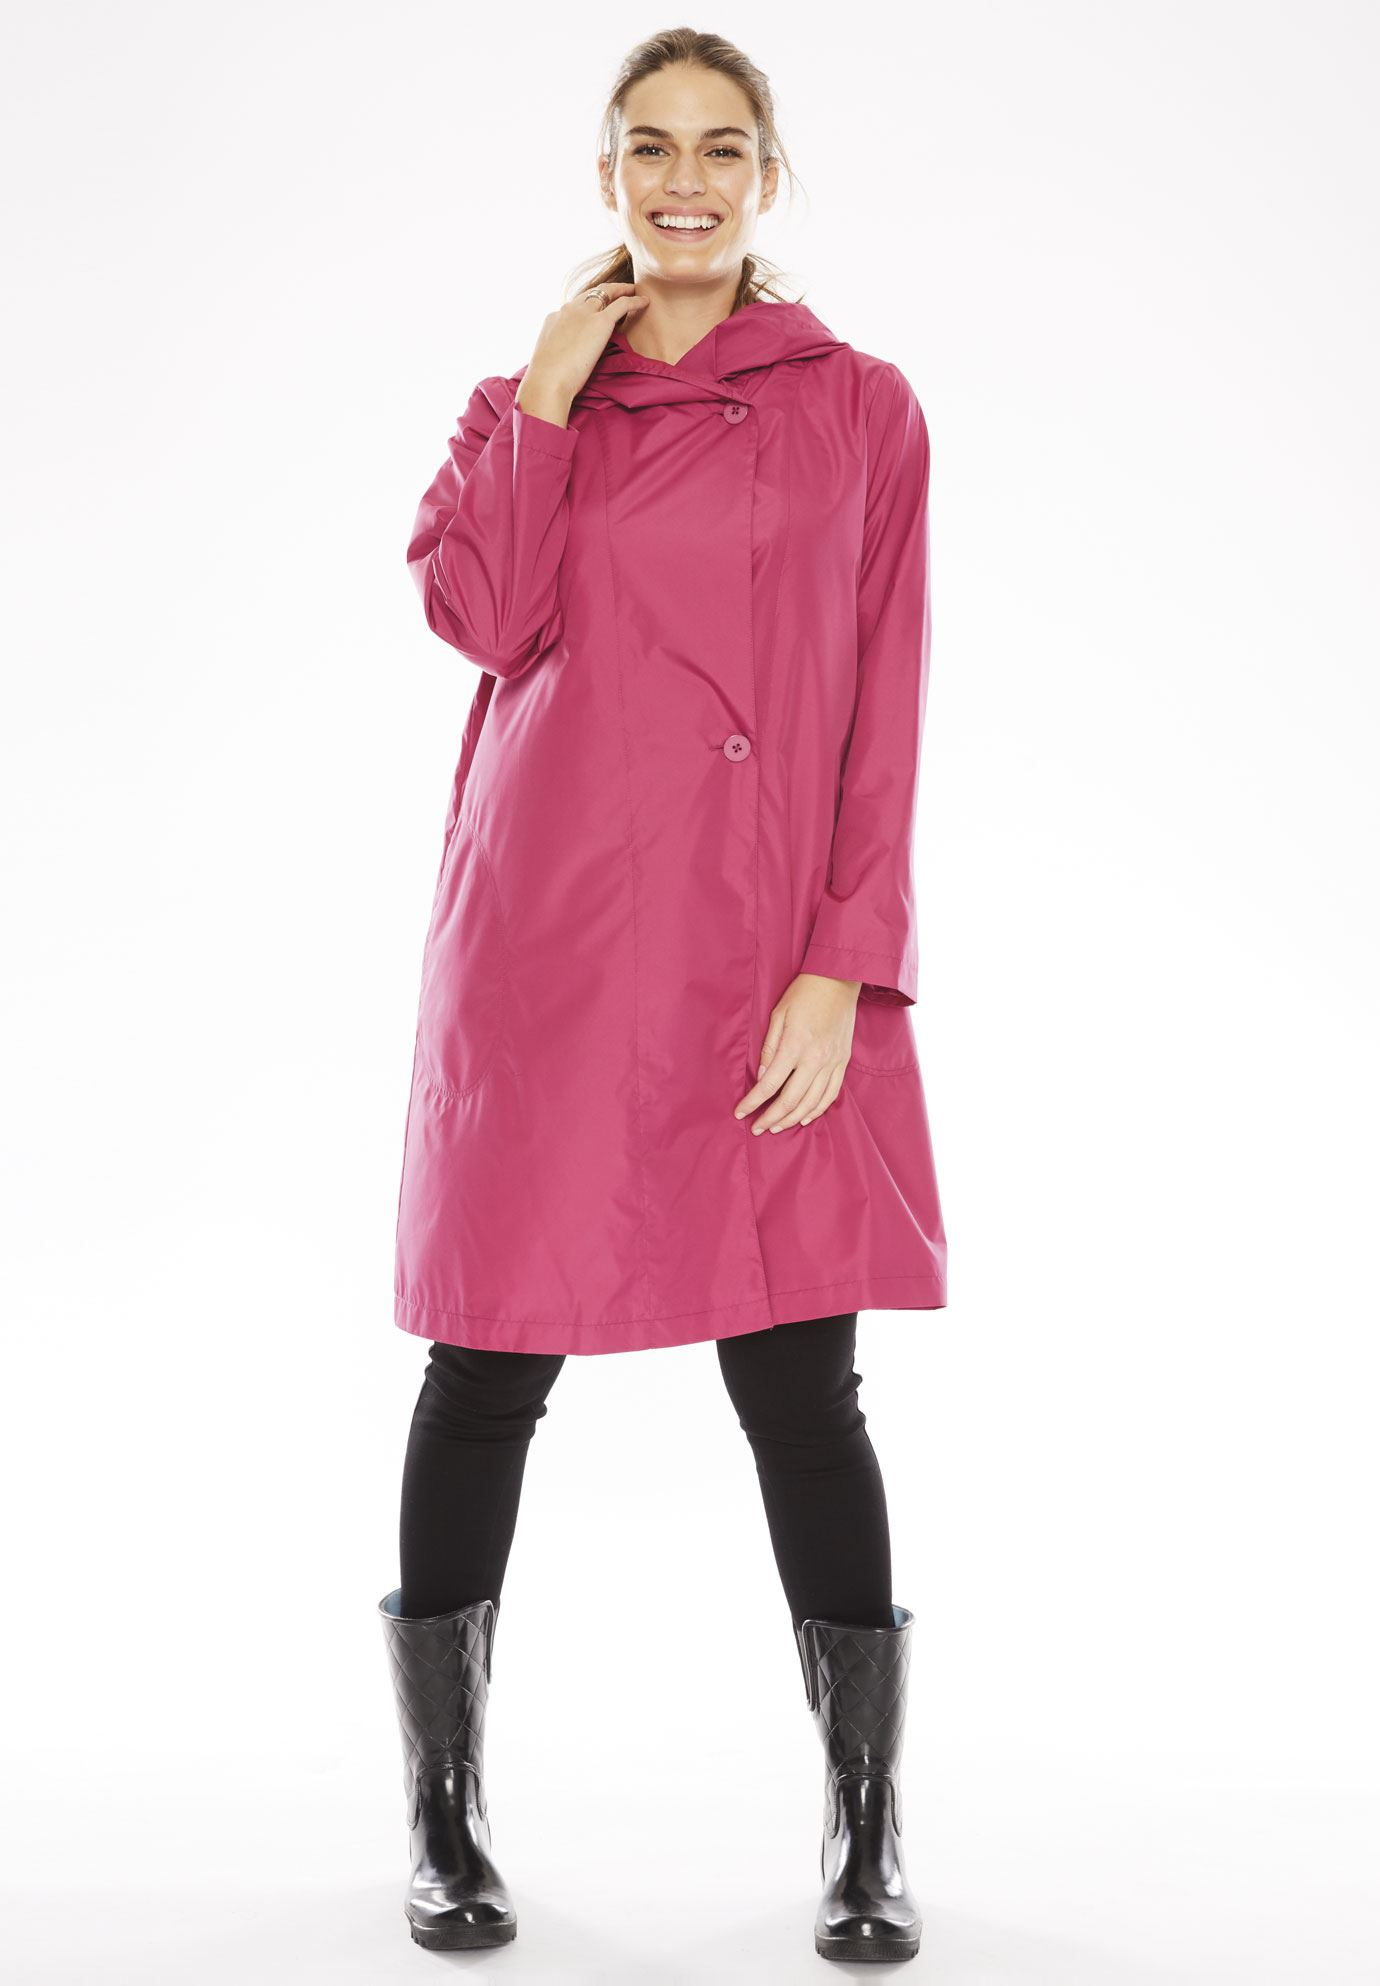 Features you should look into while buying a raincoat for women